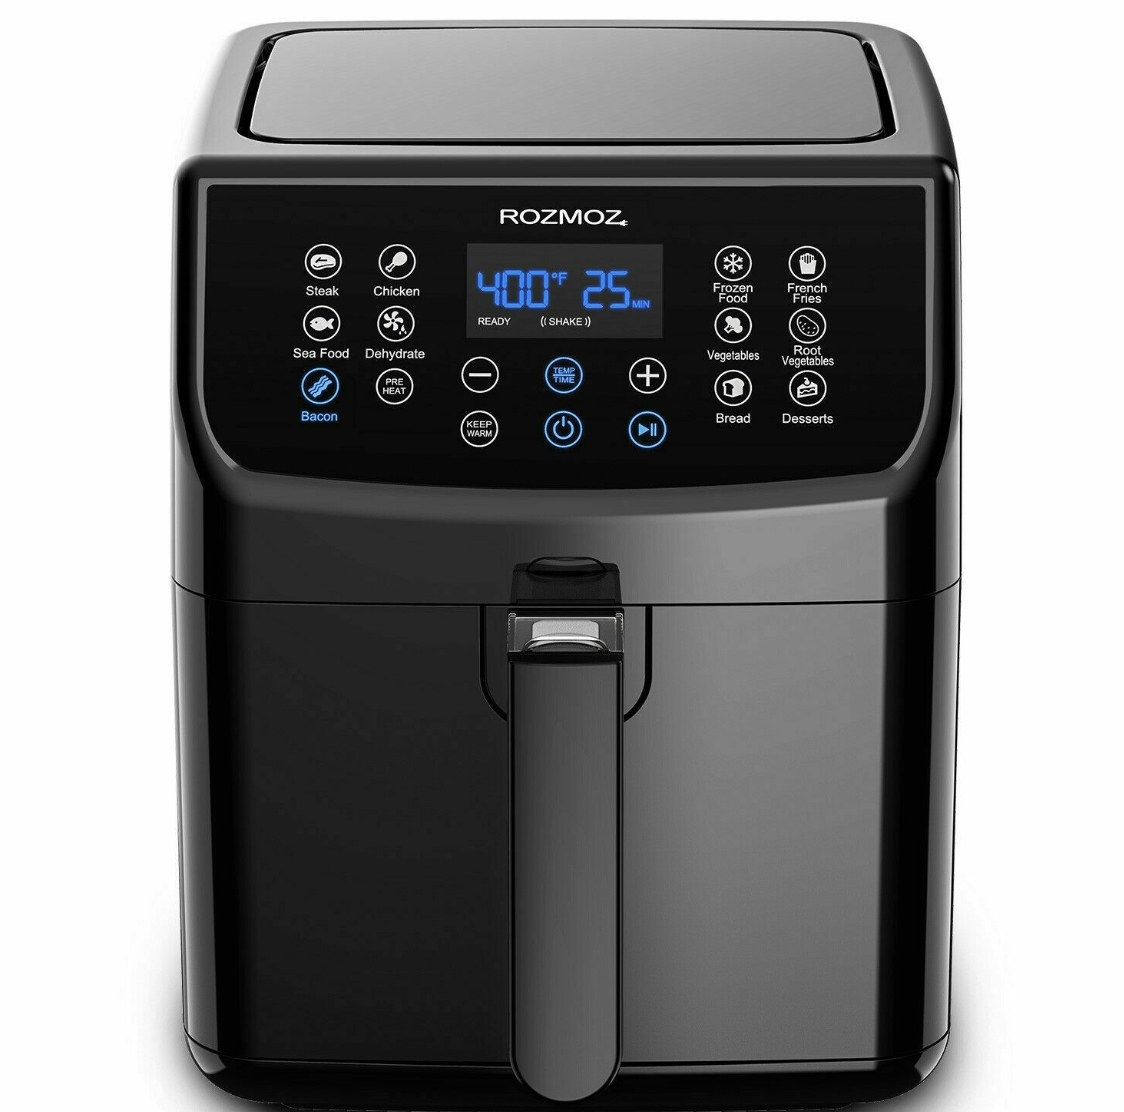 The air fryer is black with white buttons and blue numbers